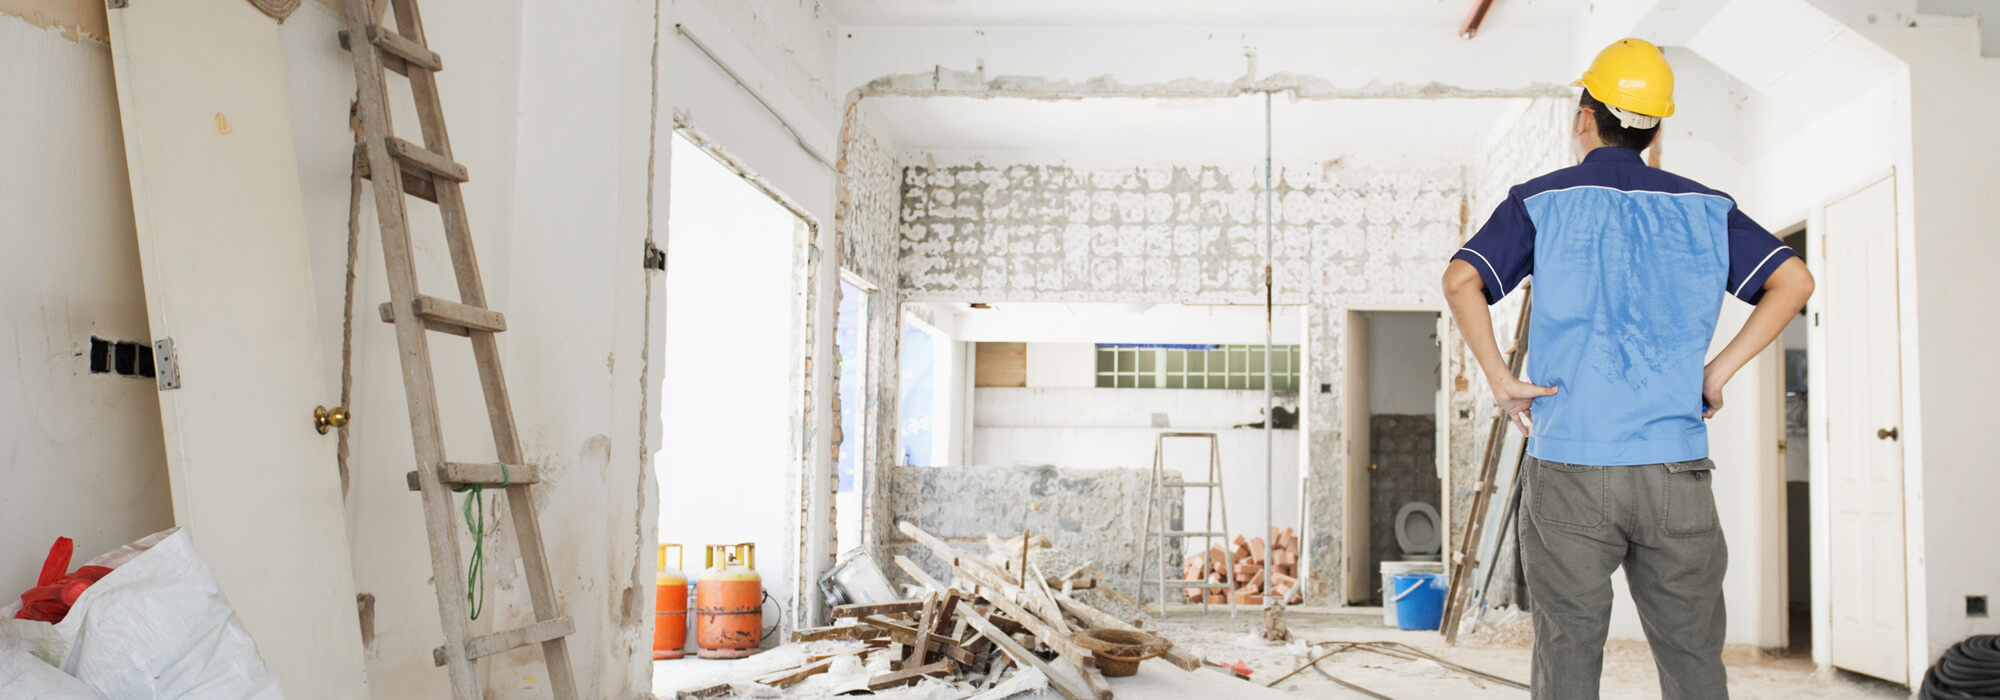 Building Renovating Property Checklist - Building looking at construction site